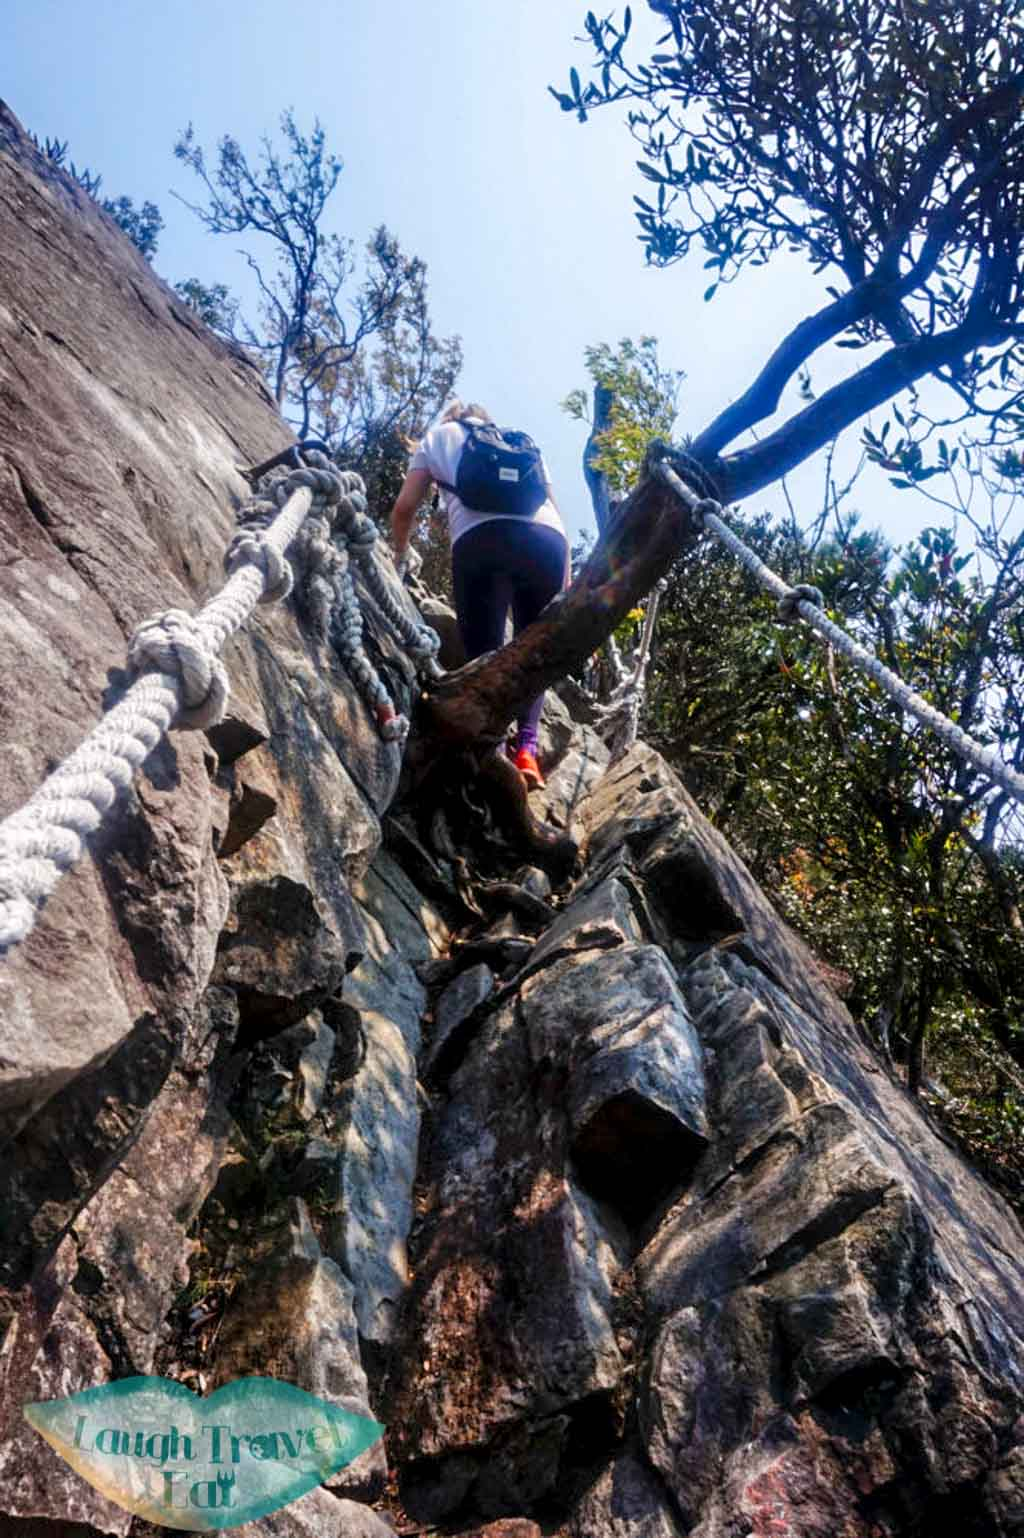 steep part of the trail along rocks at Yuan Zui Mountain in Dasyueshan National Forest Recreational Area, Taichung - Laugh Travel Eat